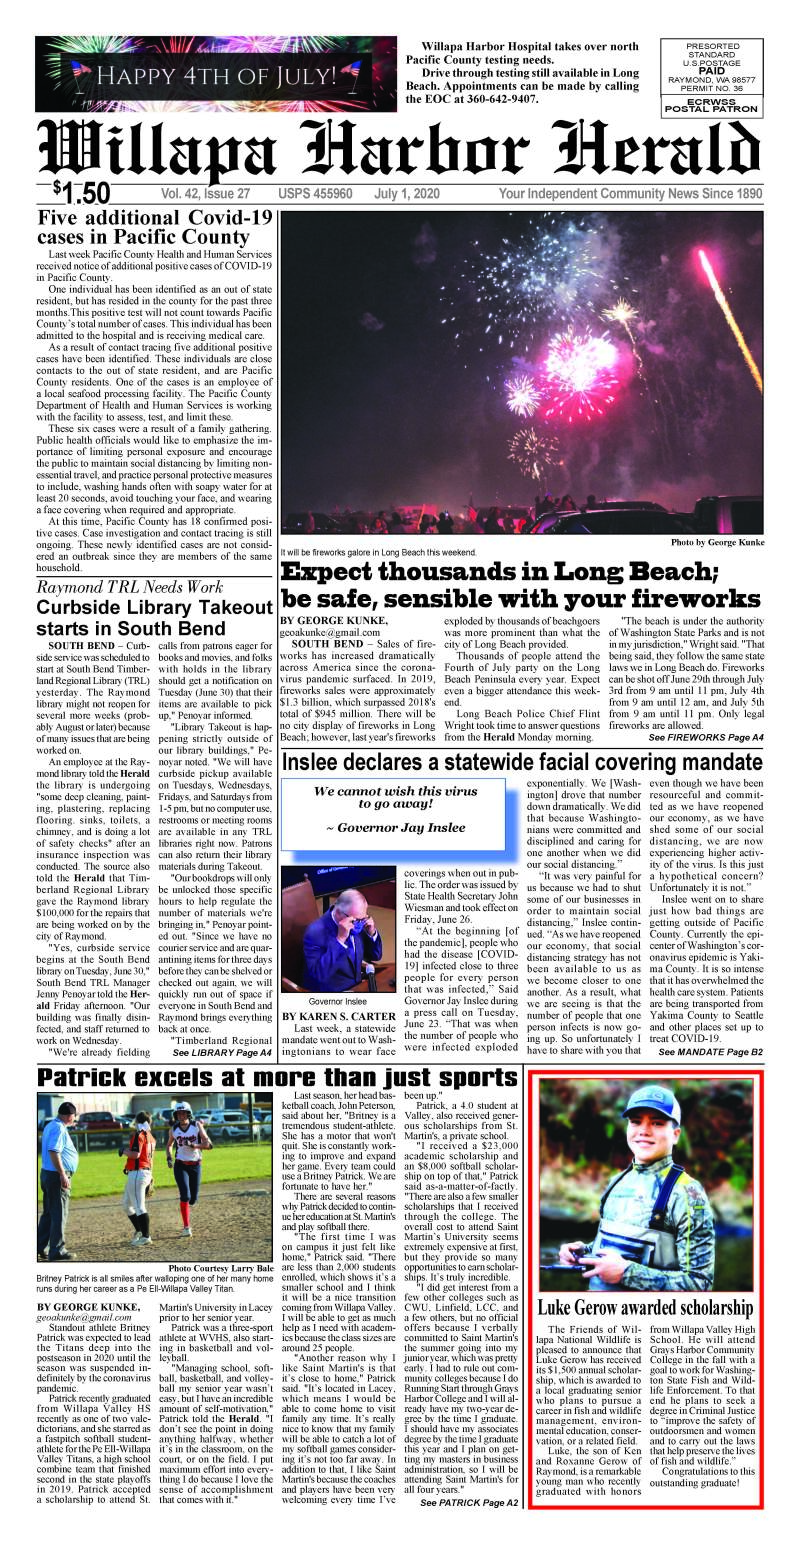 July 1, 2020 Willapa Harbor Herald and Pacific County Press